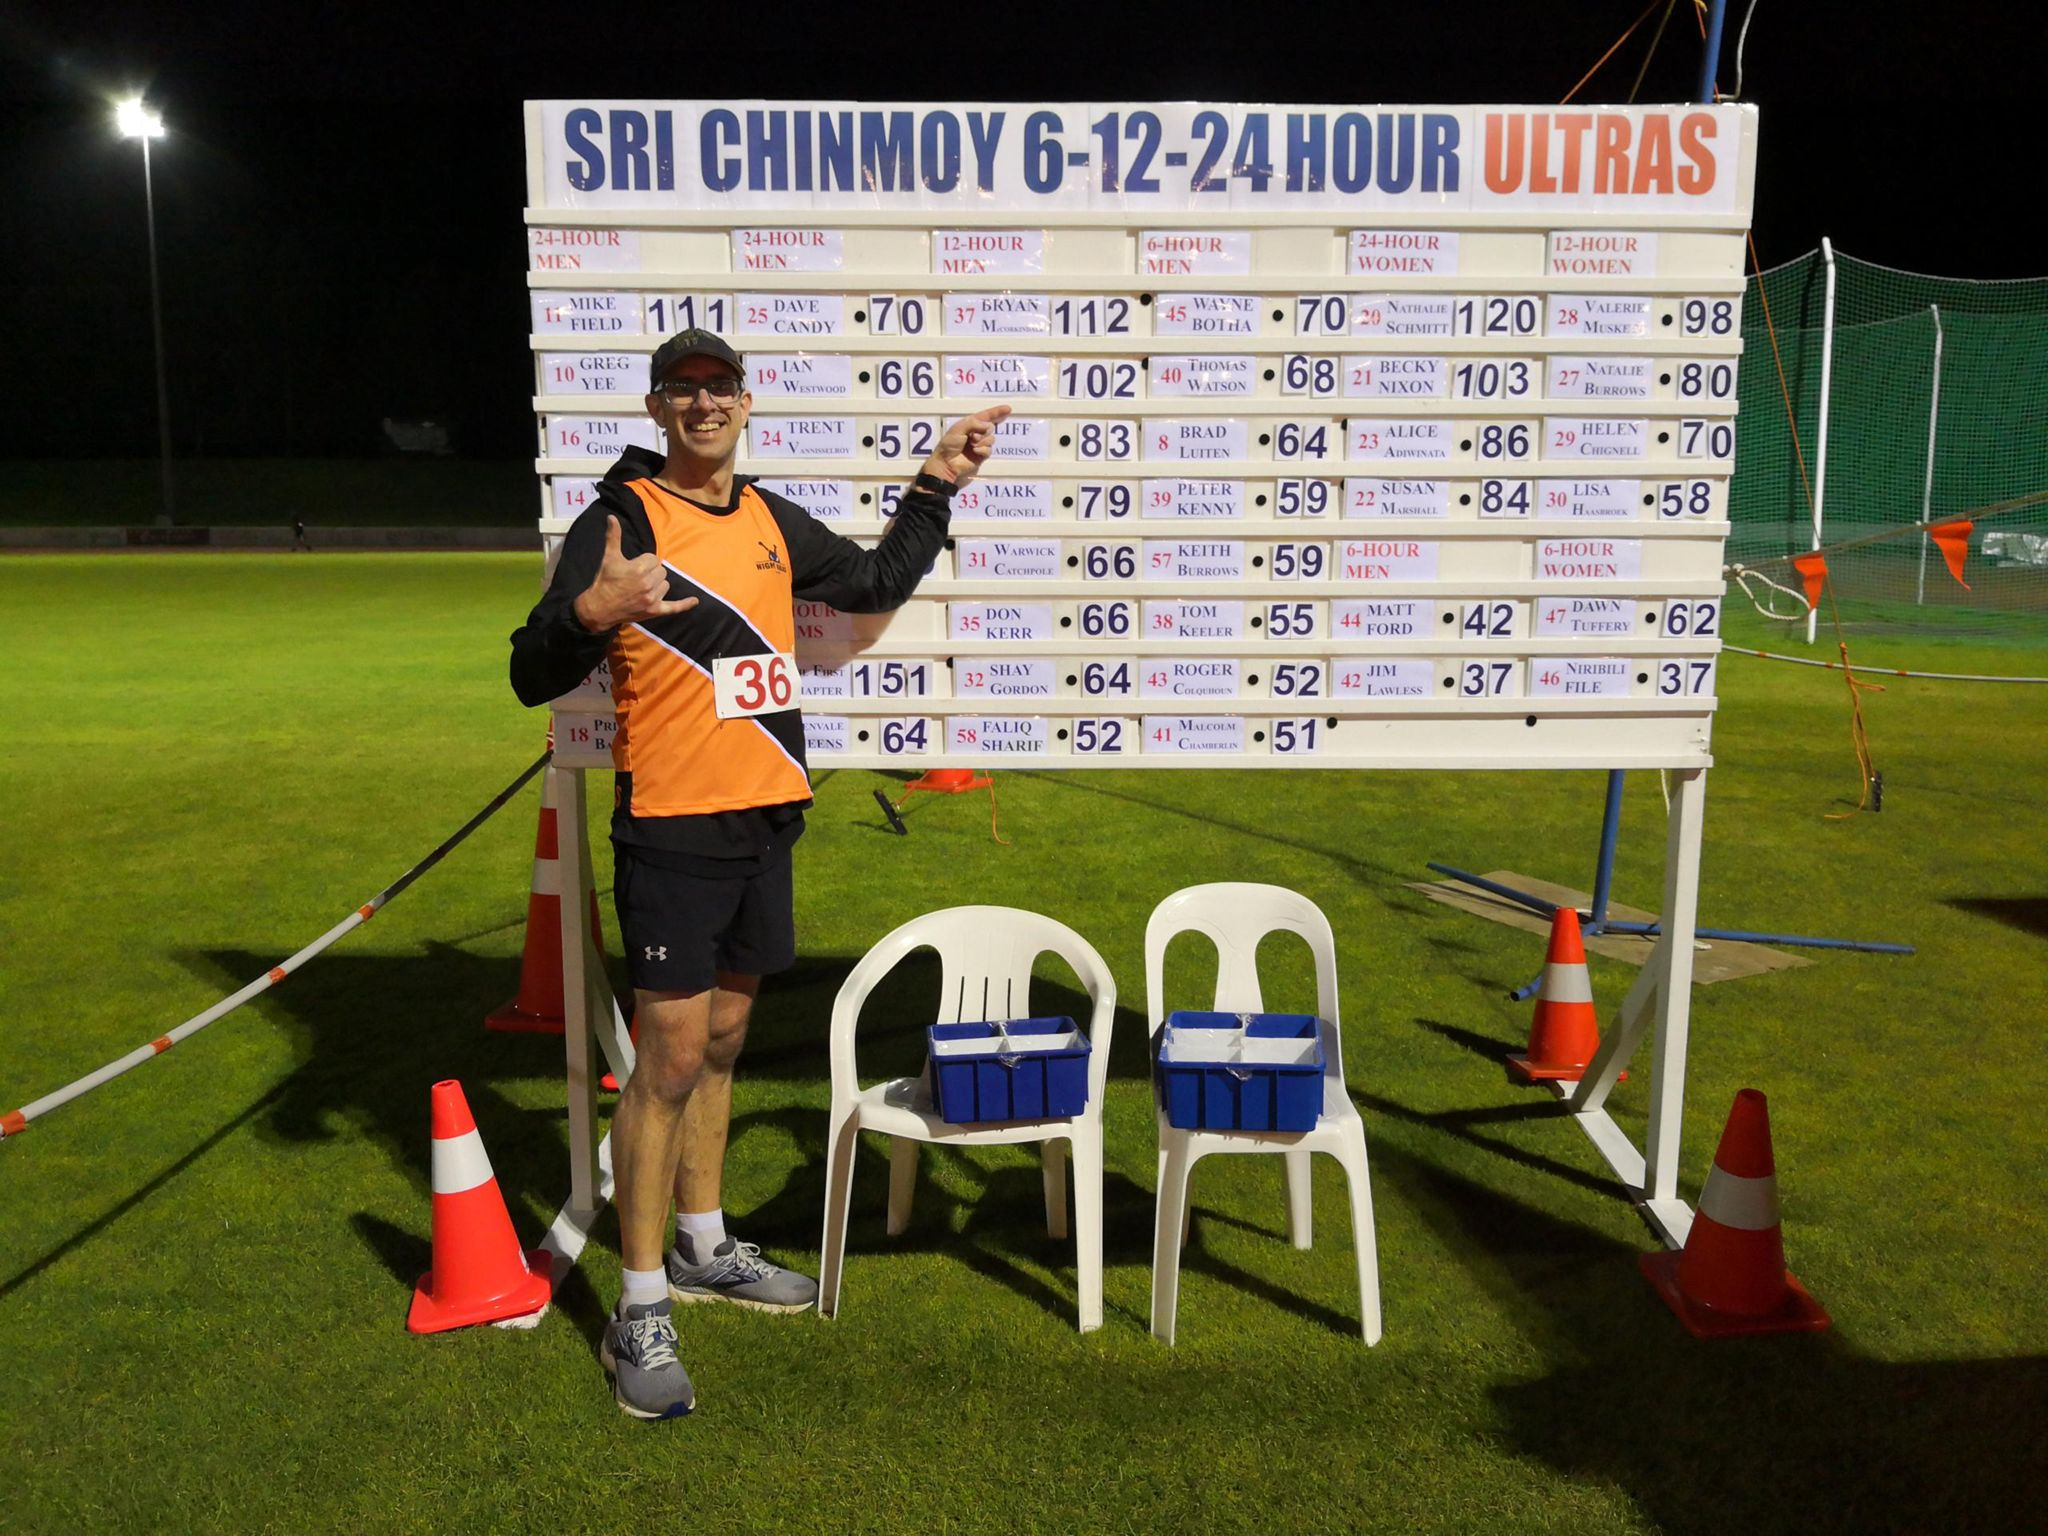 Sri Chinmoy 12hr Race Report